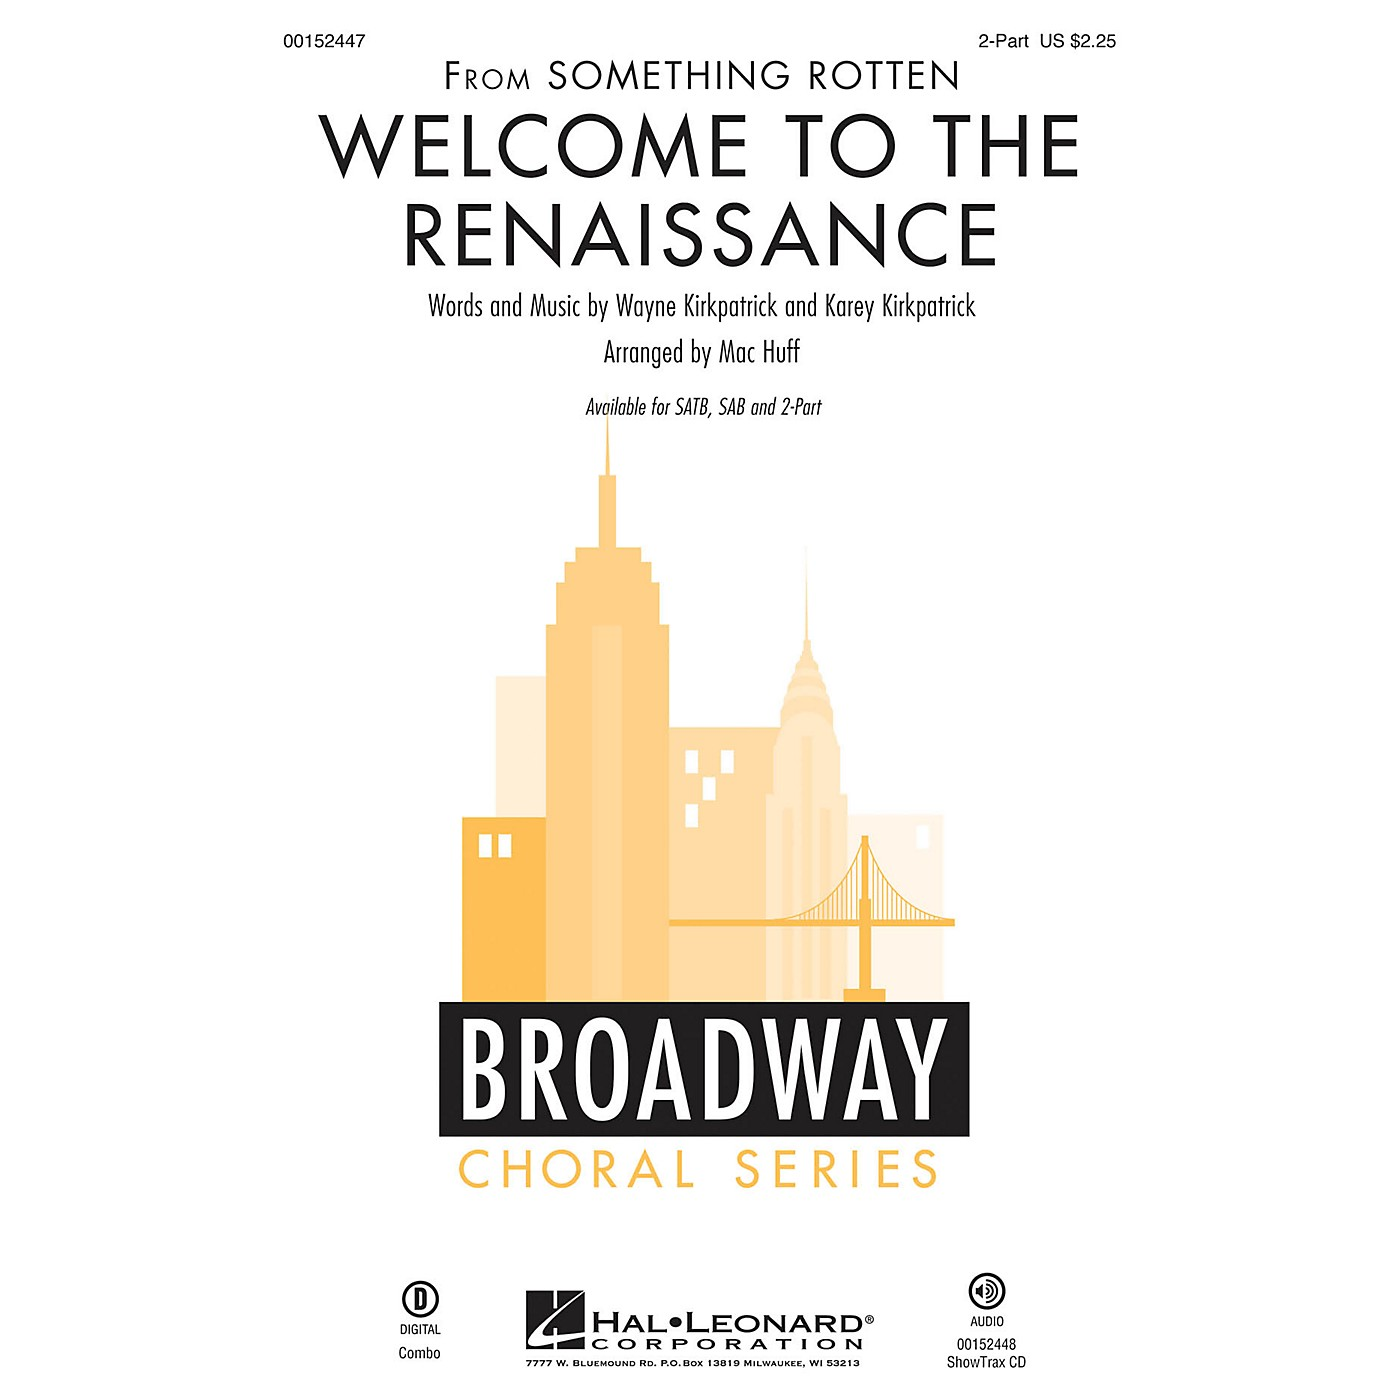 Hal Leonard Welcome to the Renaissance (from Something Rotten) 2-Part arranged by Mac Huff thumbnail